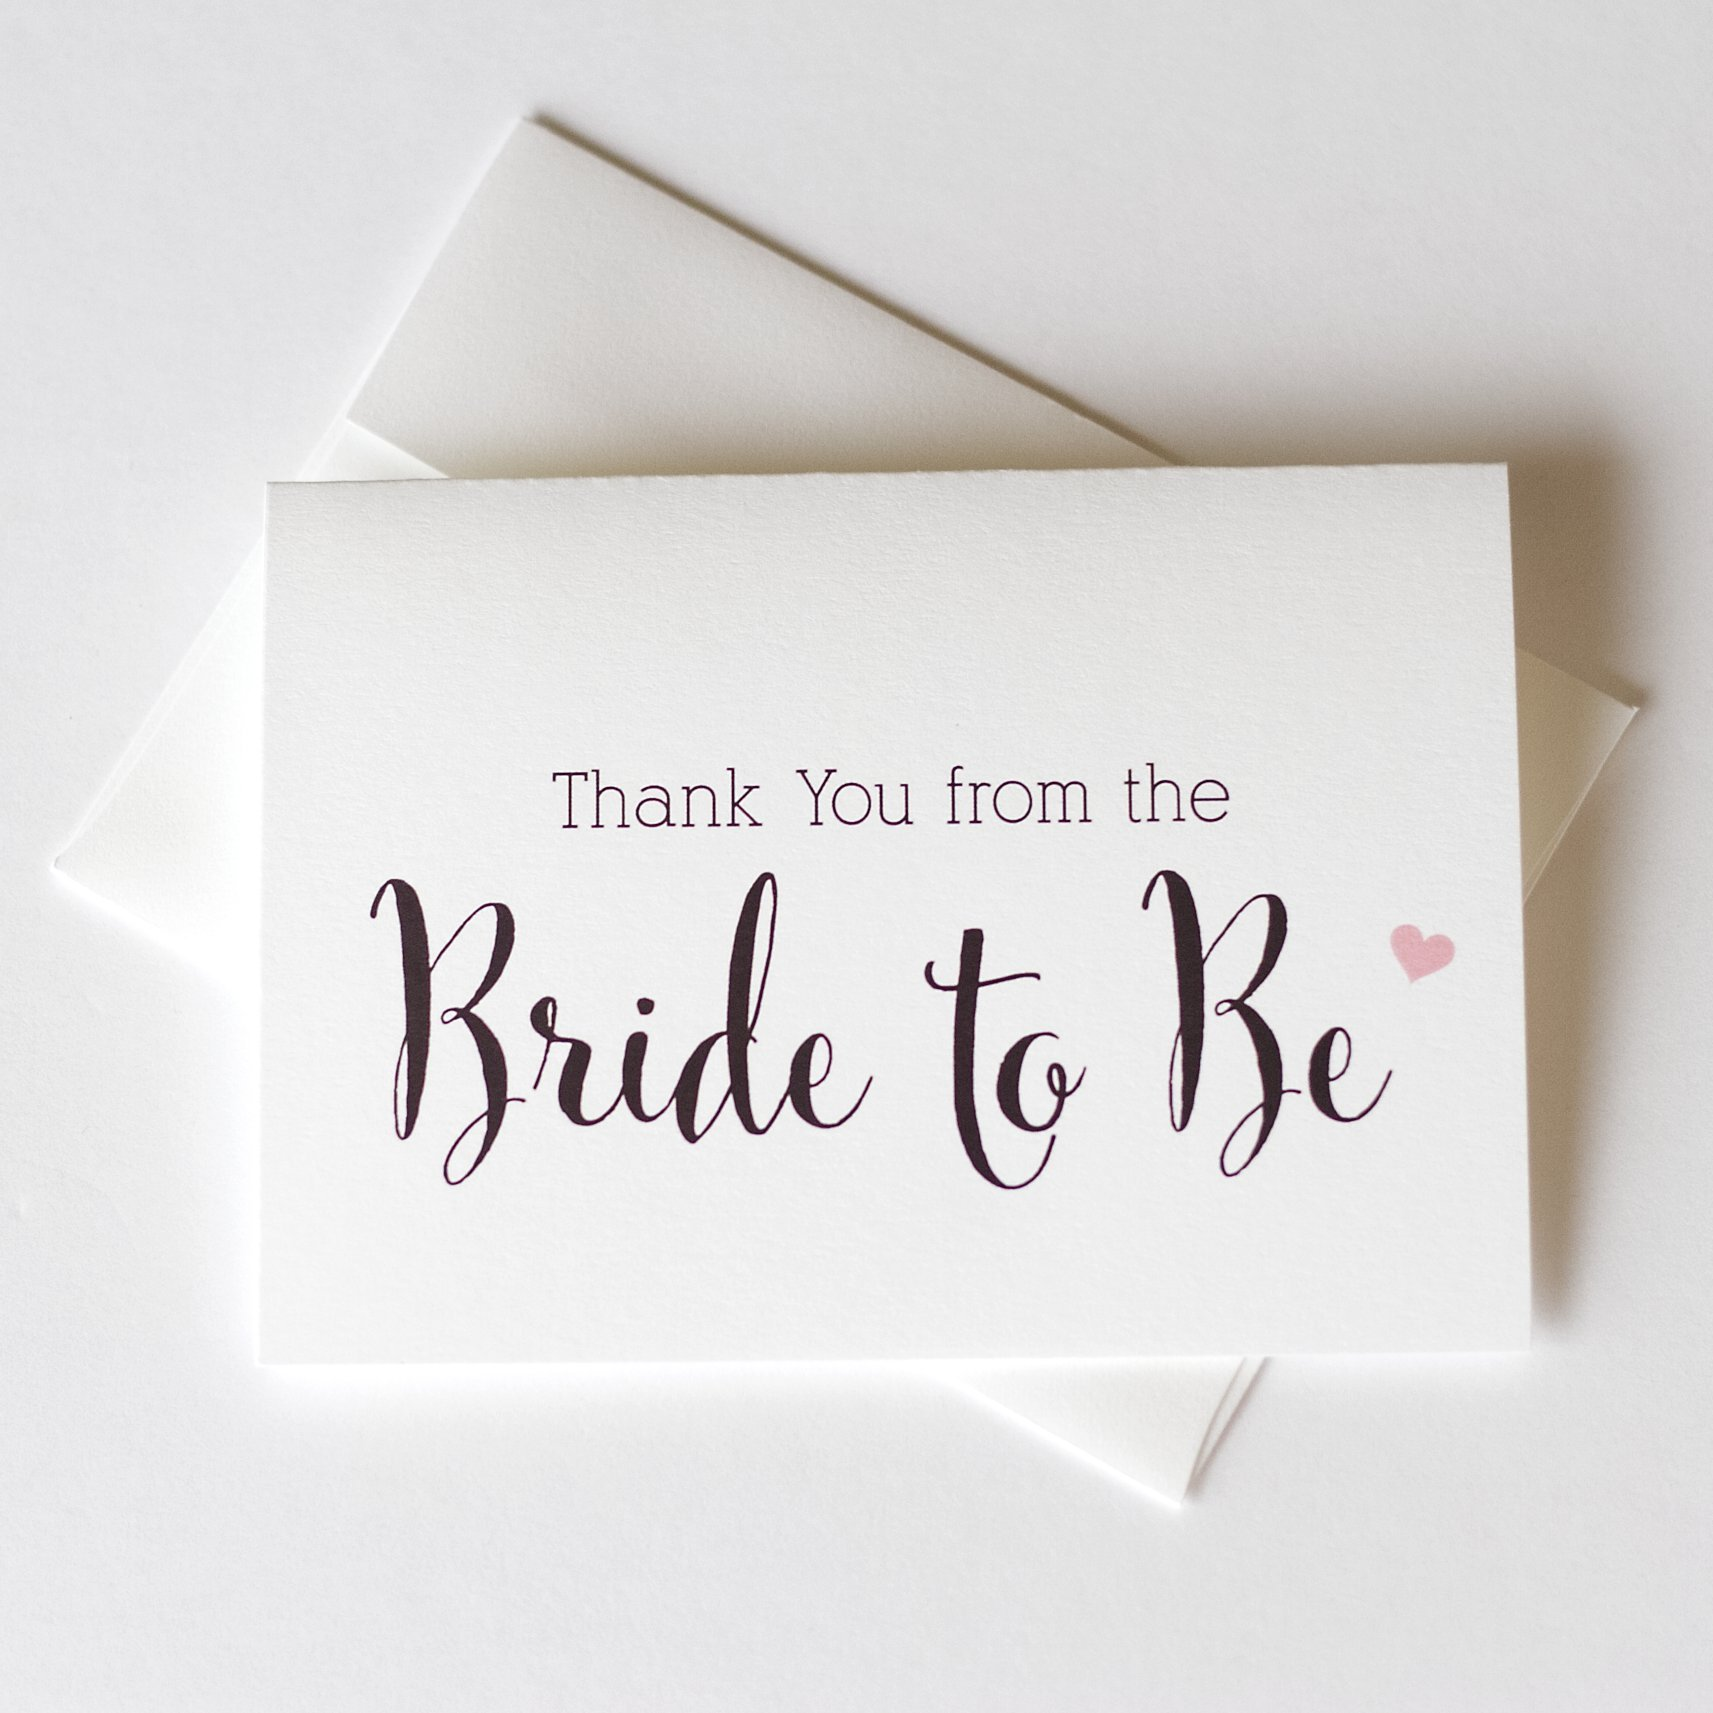 12 - Thank You from the Bride To Be, Thank You from the Future Mrs., Bridal Shower Thank You Cards (TYCN)